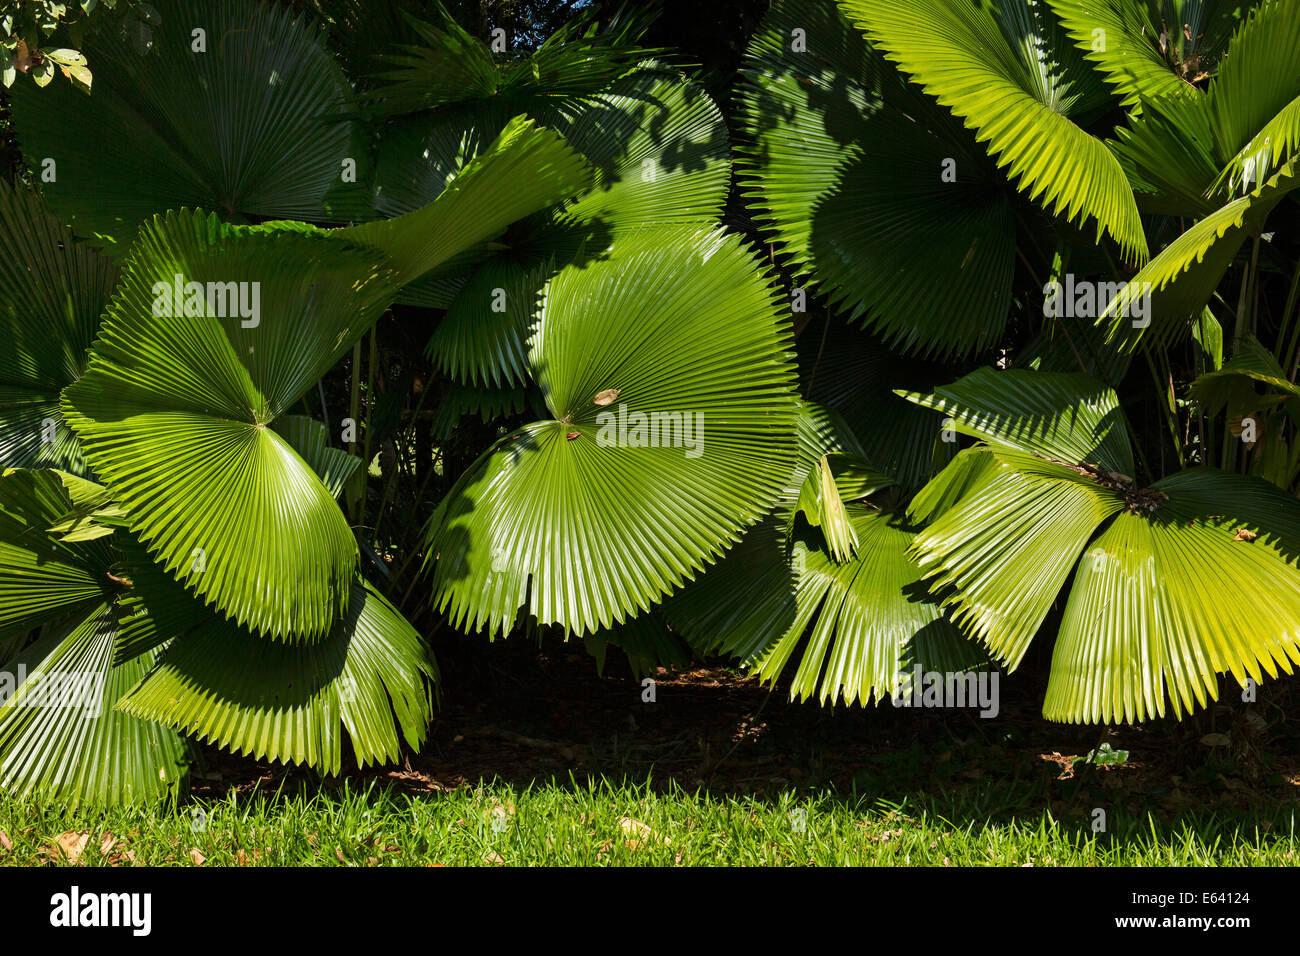 Huge palm fronds in the botanical garden of the Mae Fah Luang Art and Culture Park, Chiang Rai Province, Chiang - Stock Image